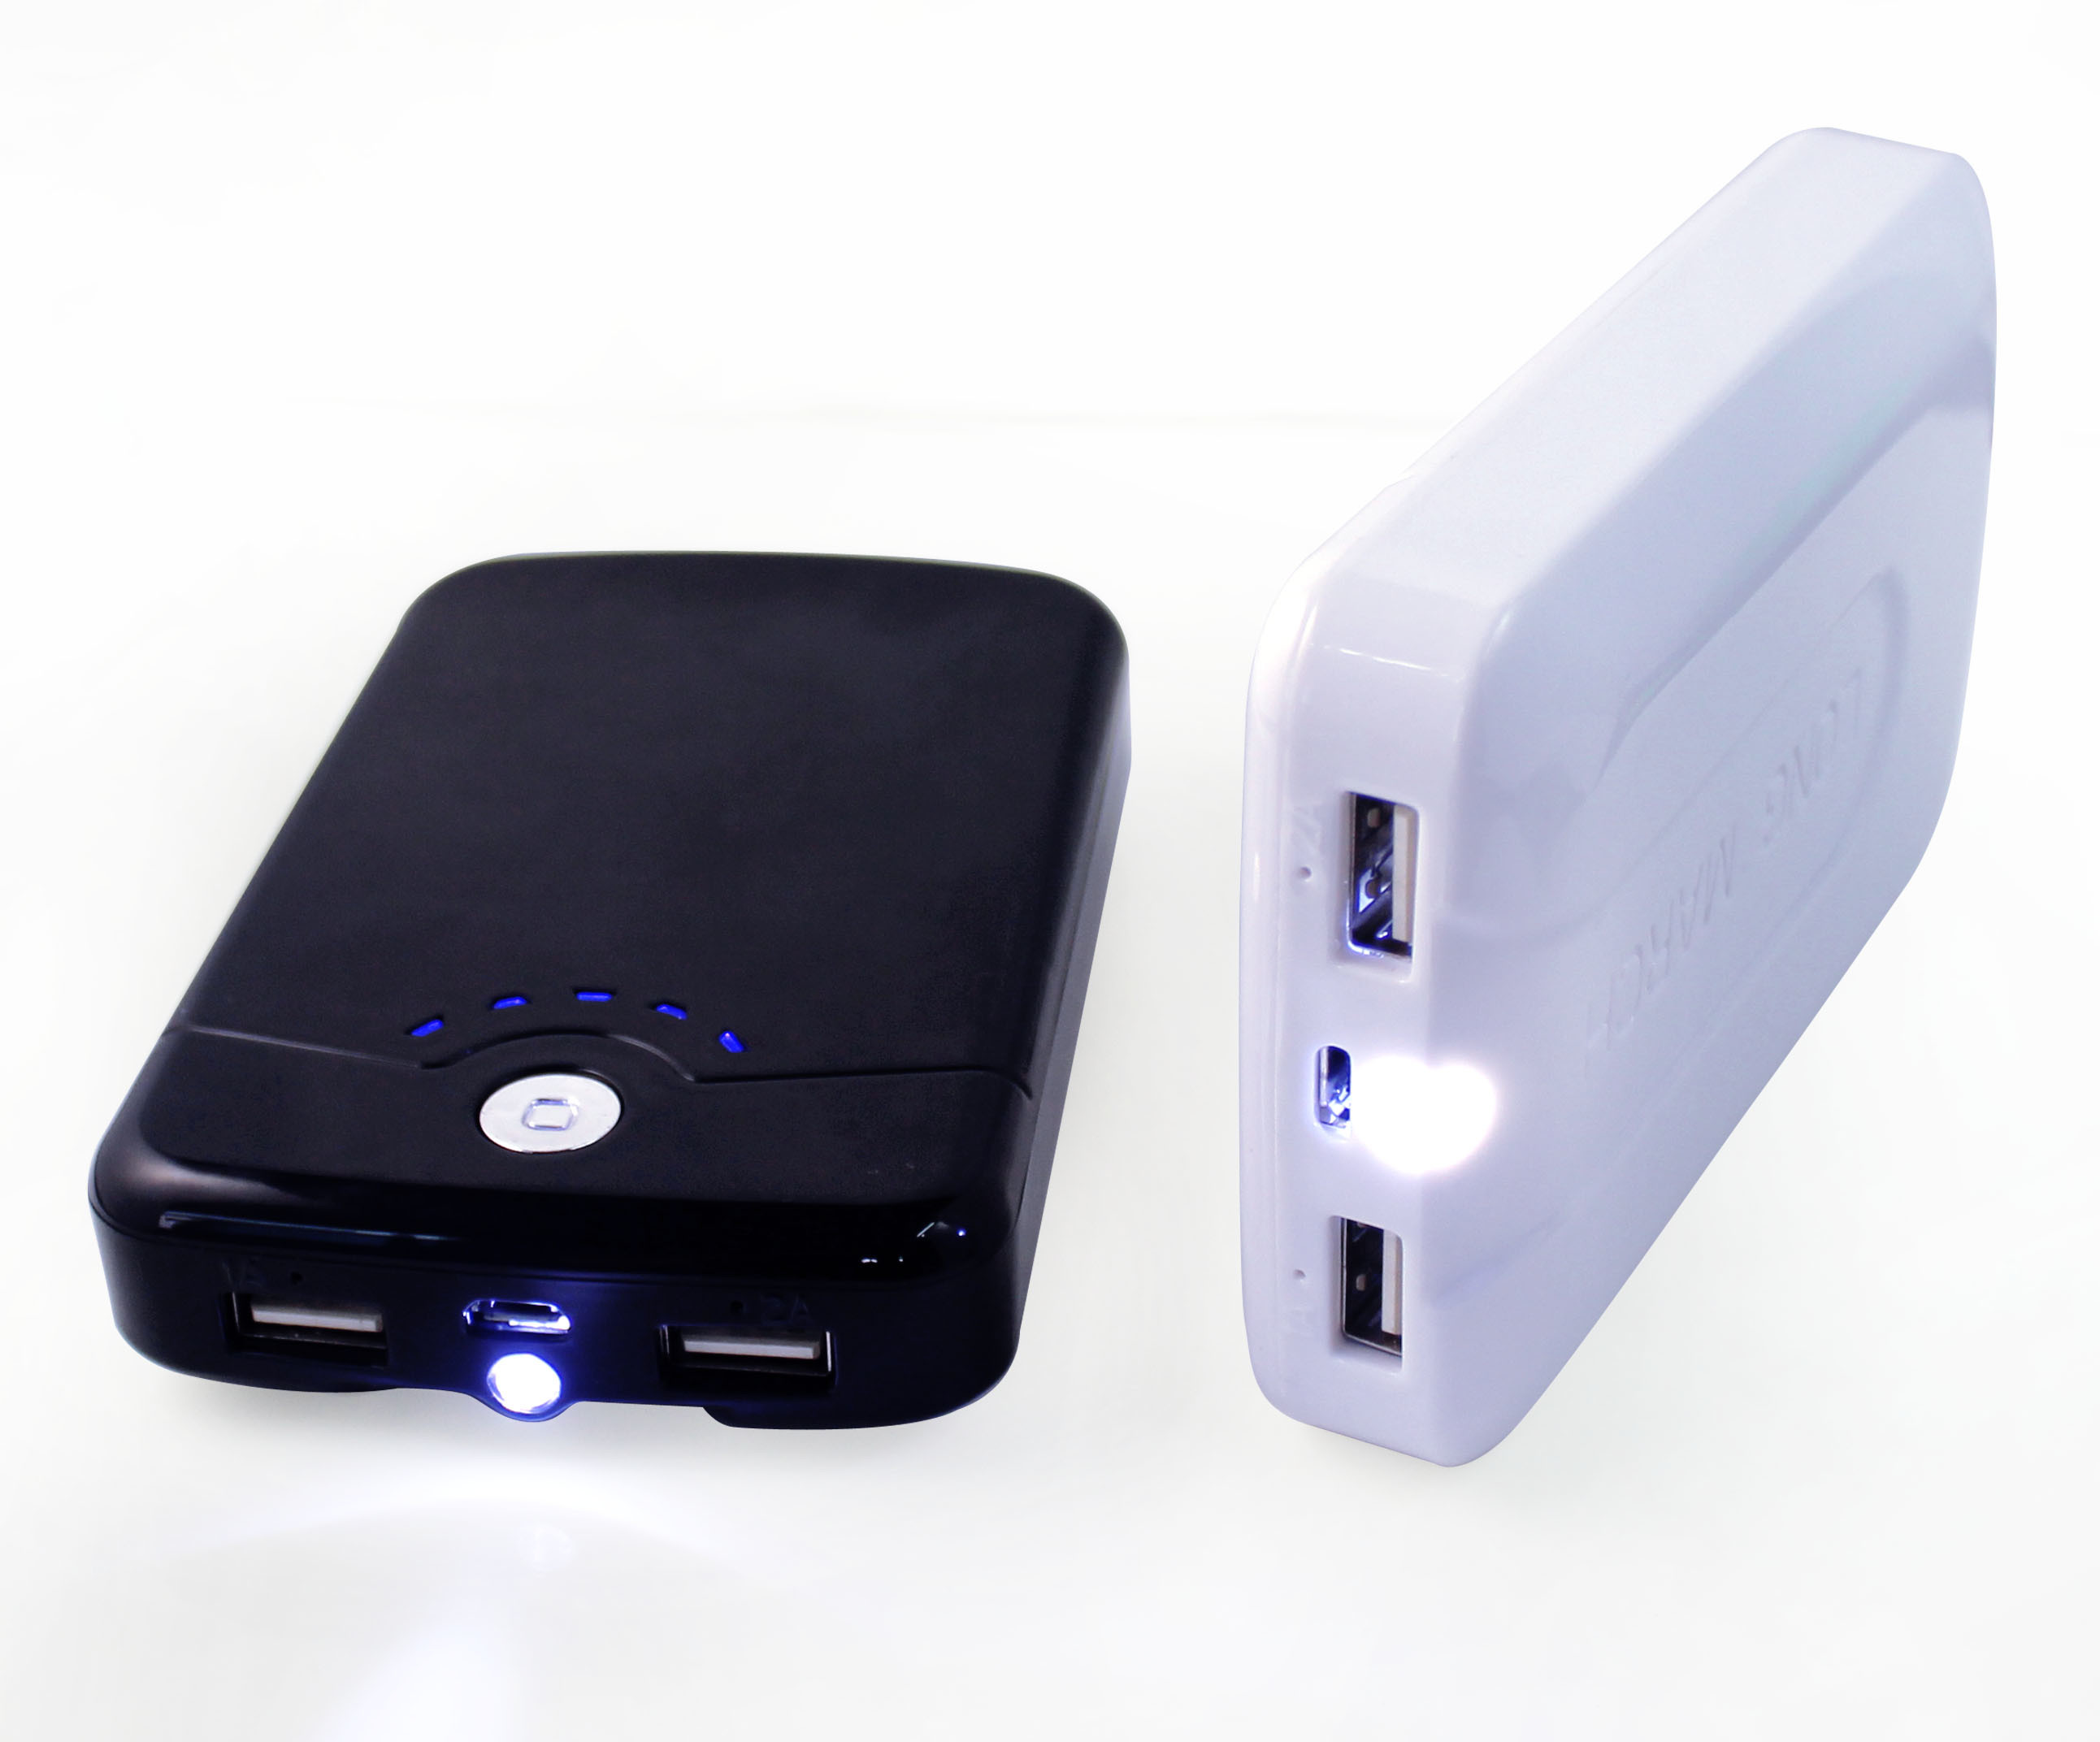 Porable Universal Battery Charger, Power Bank for Smart Mobile Phone Charger